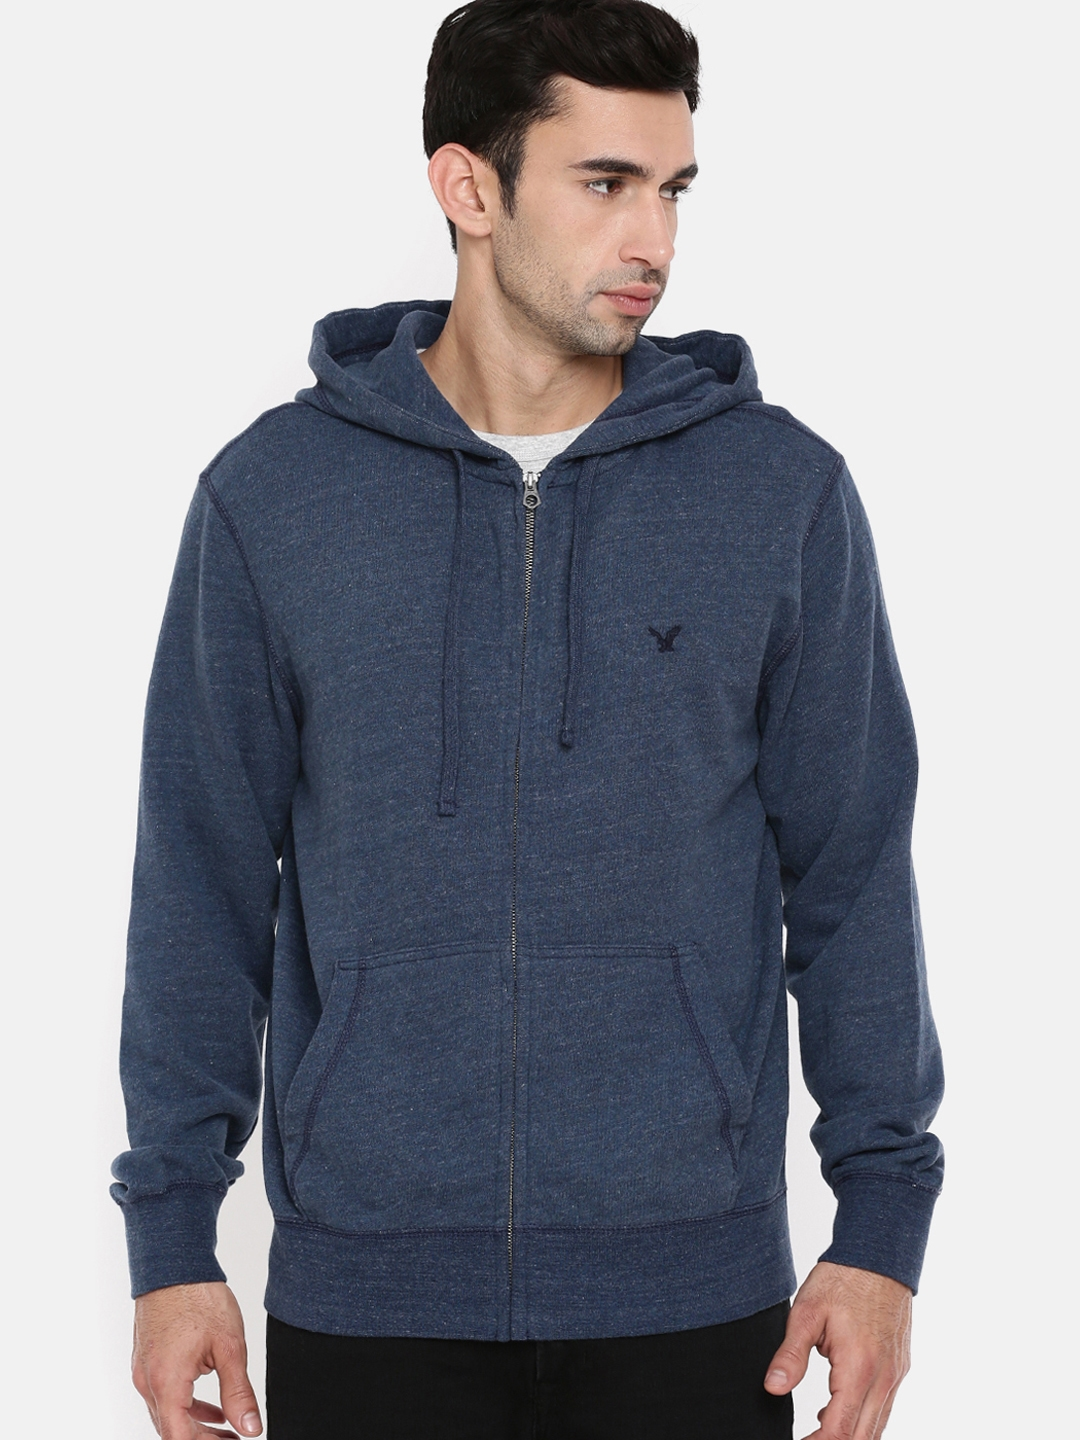 8369757b622a2 Buy AMERICAN EAGLE OUTFITTERS Men Blue Solid Hooded Sweatshirt ...